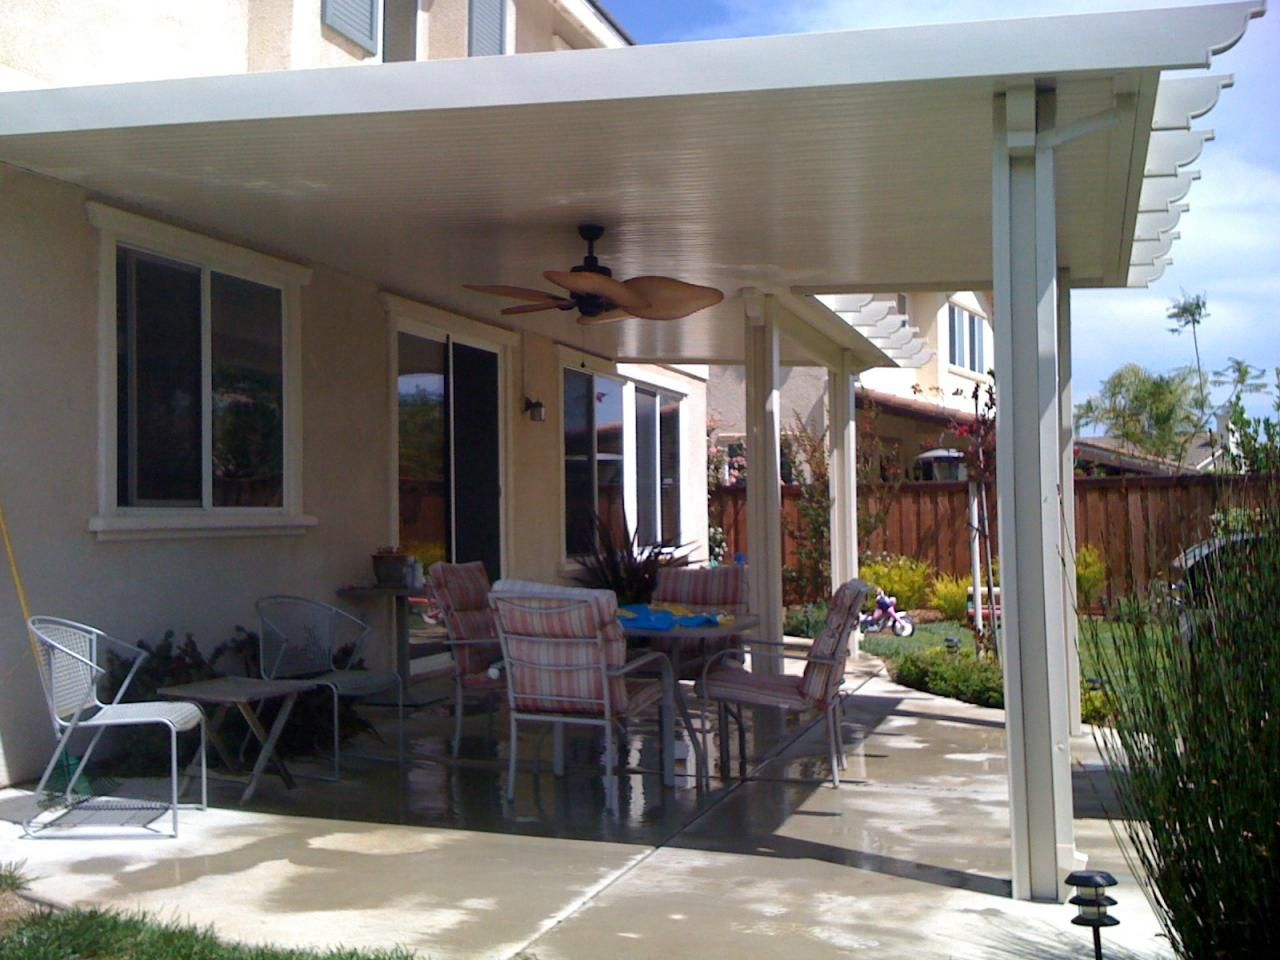 Completed Alumawood Projects From Southern Calfornia Patios   Solid, Open  Lattice, And Free Standing Alumawood Patio Covers.